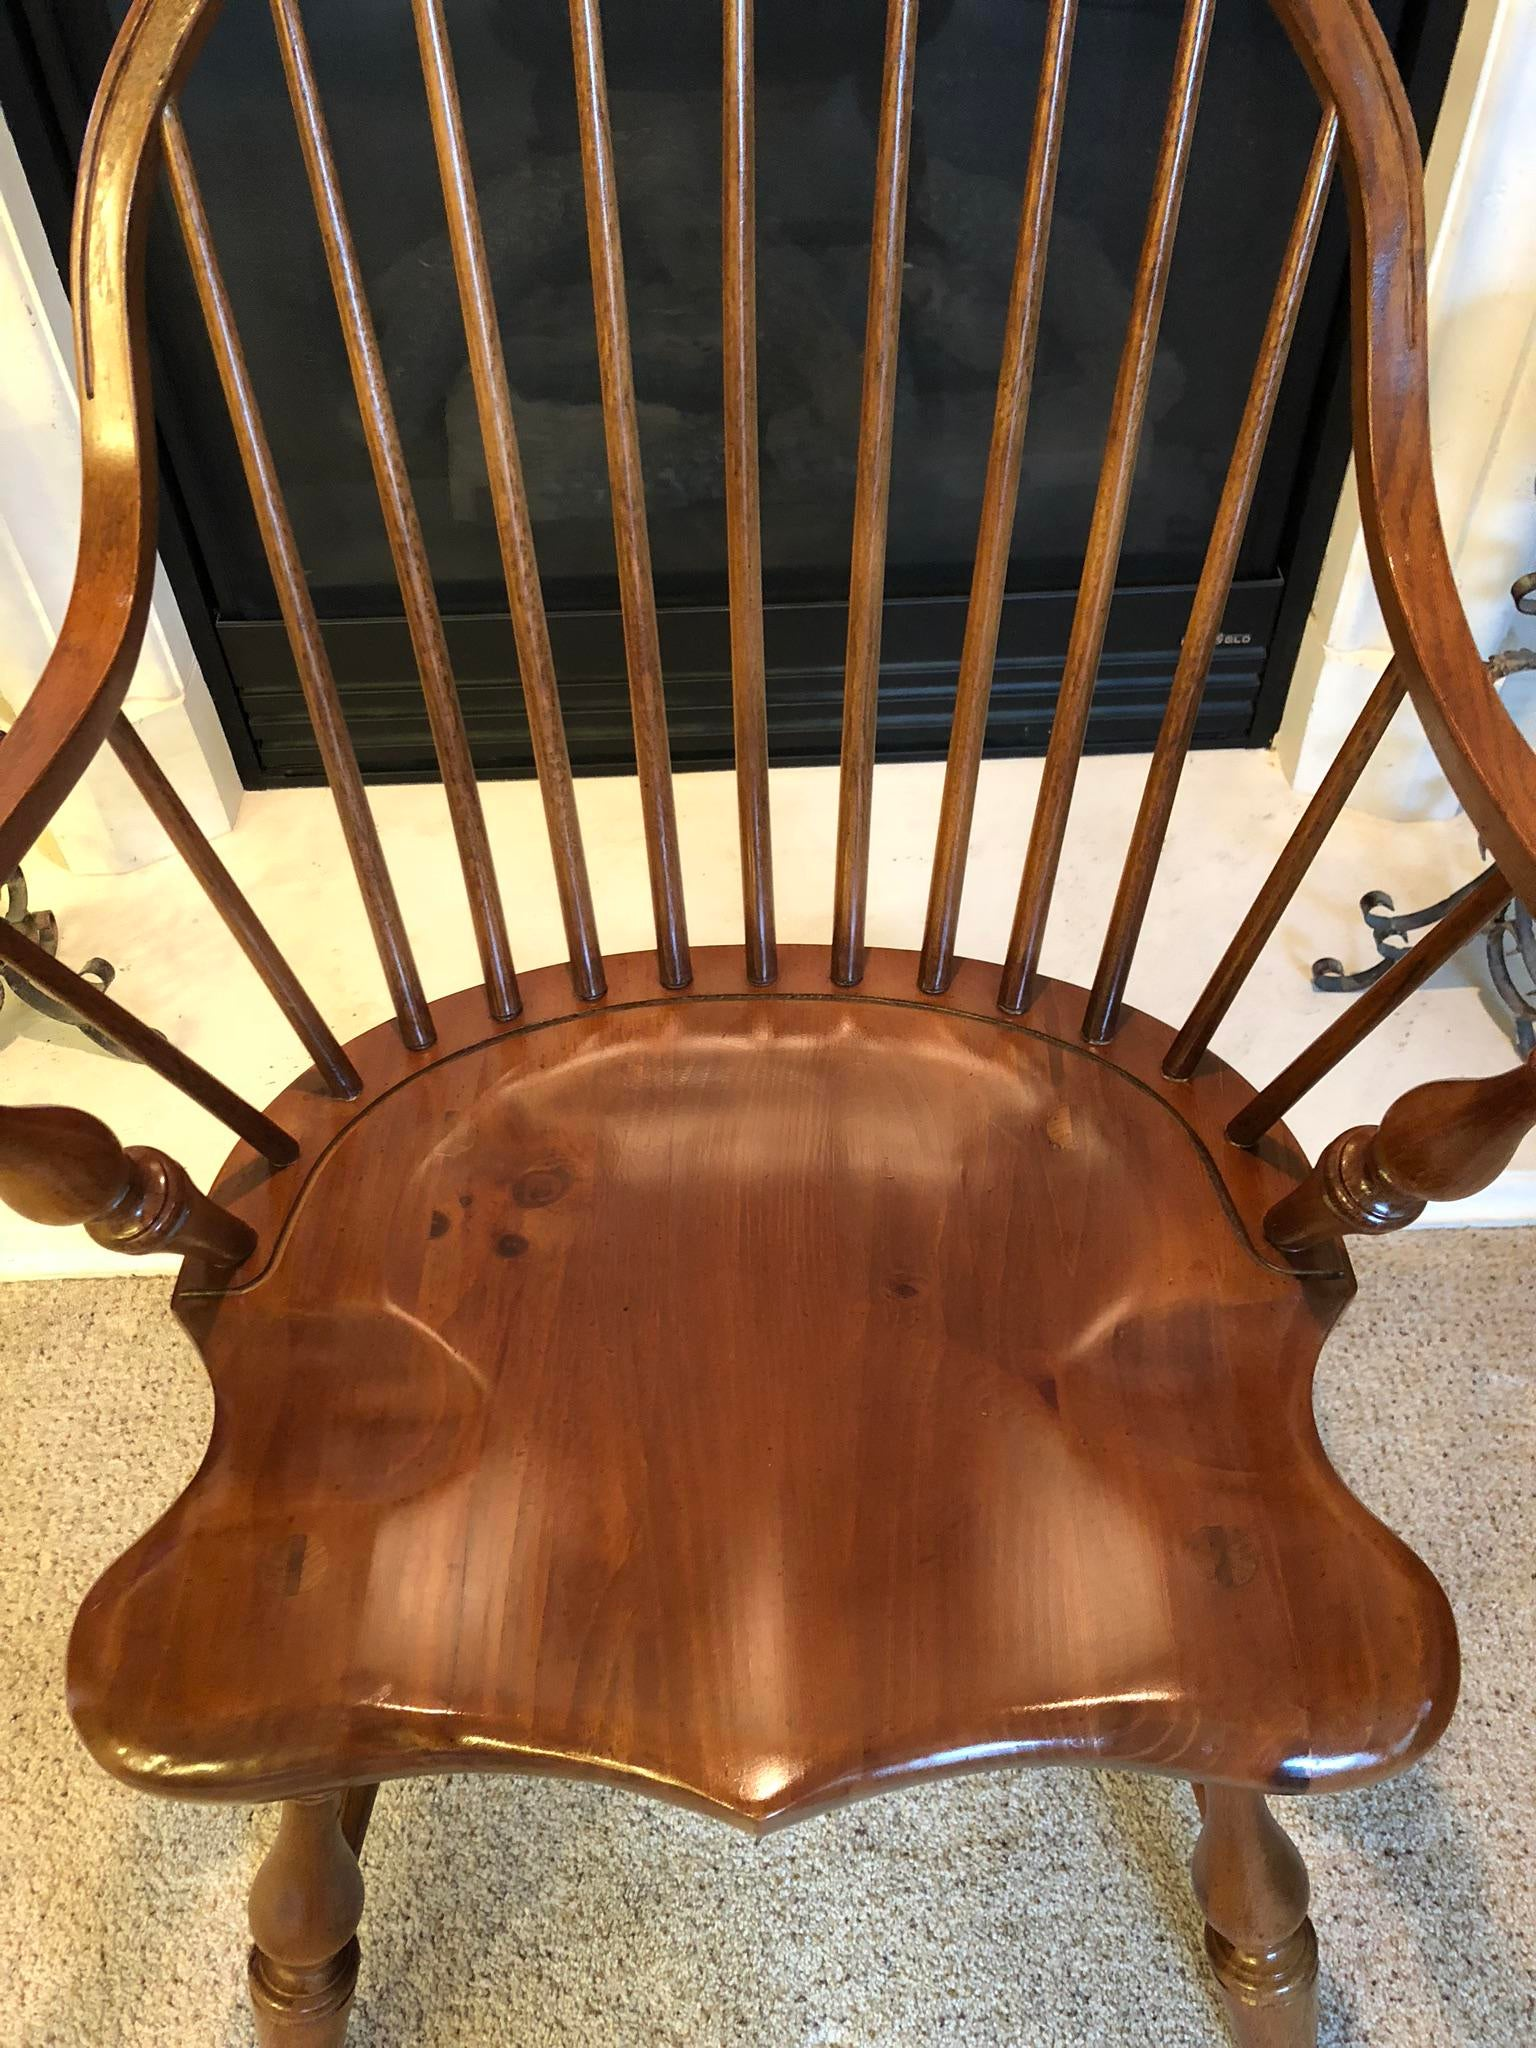 Ordinaire Vintage Thomasville Windsor Chair With Original Label Still Attached. This  Chair Is In Perfect Condition